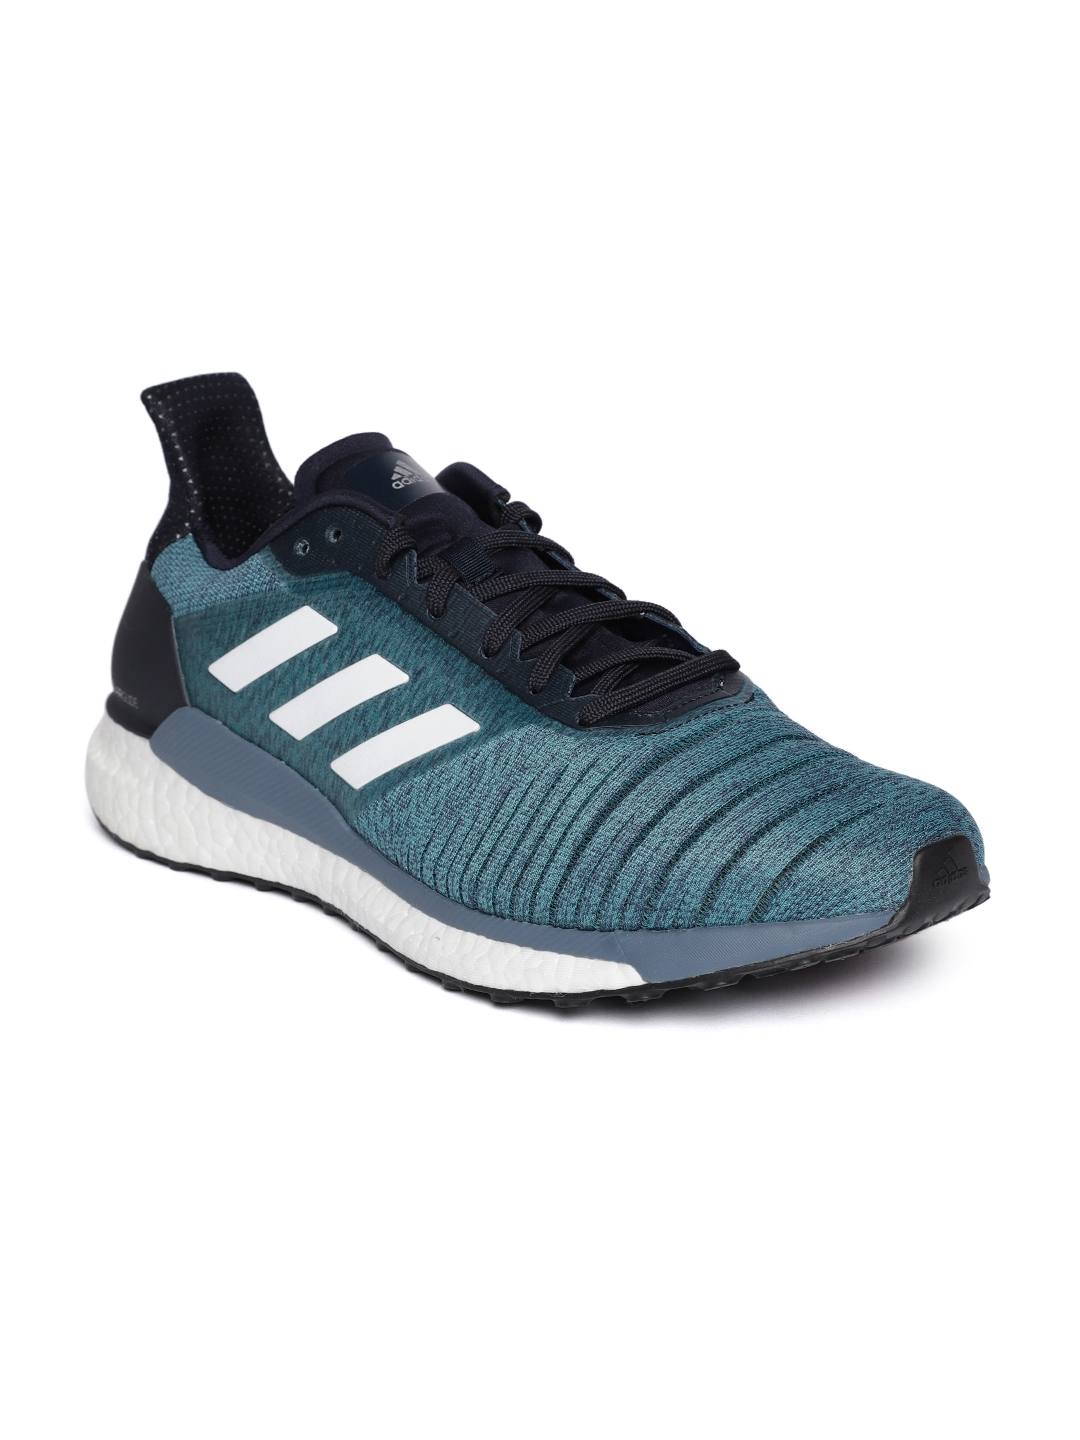 2e82882704aa22 Buy ADIDAS Men Blue Solar Glide Running Shoes - Sports Shoes for Men ...